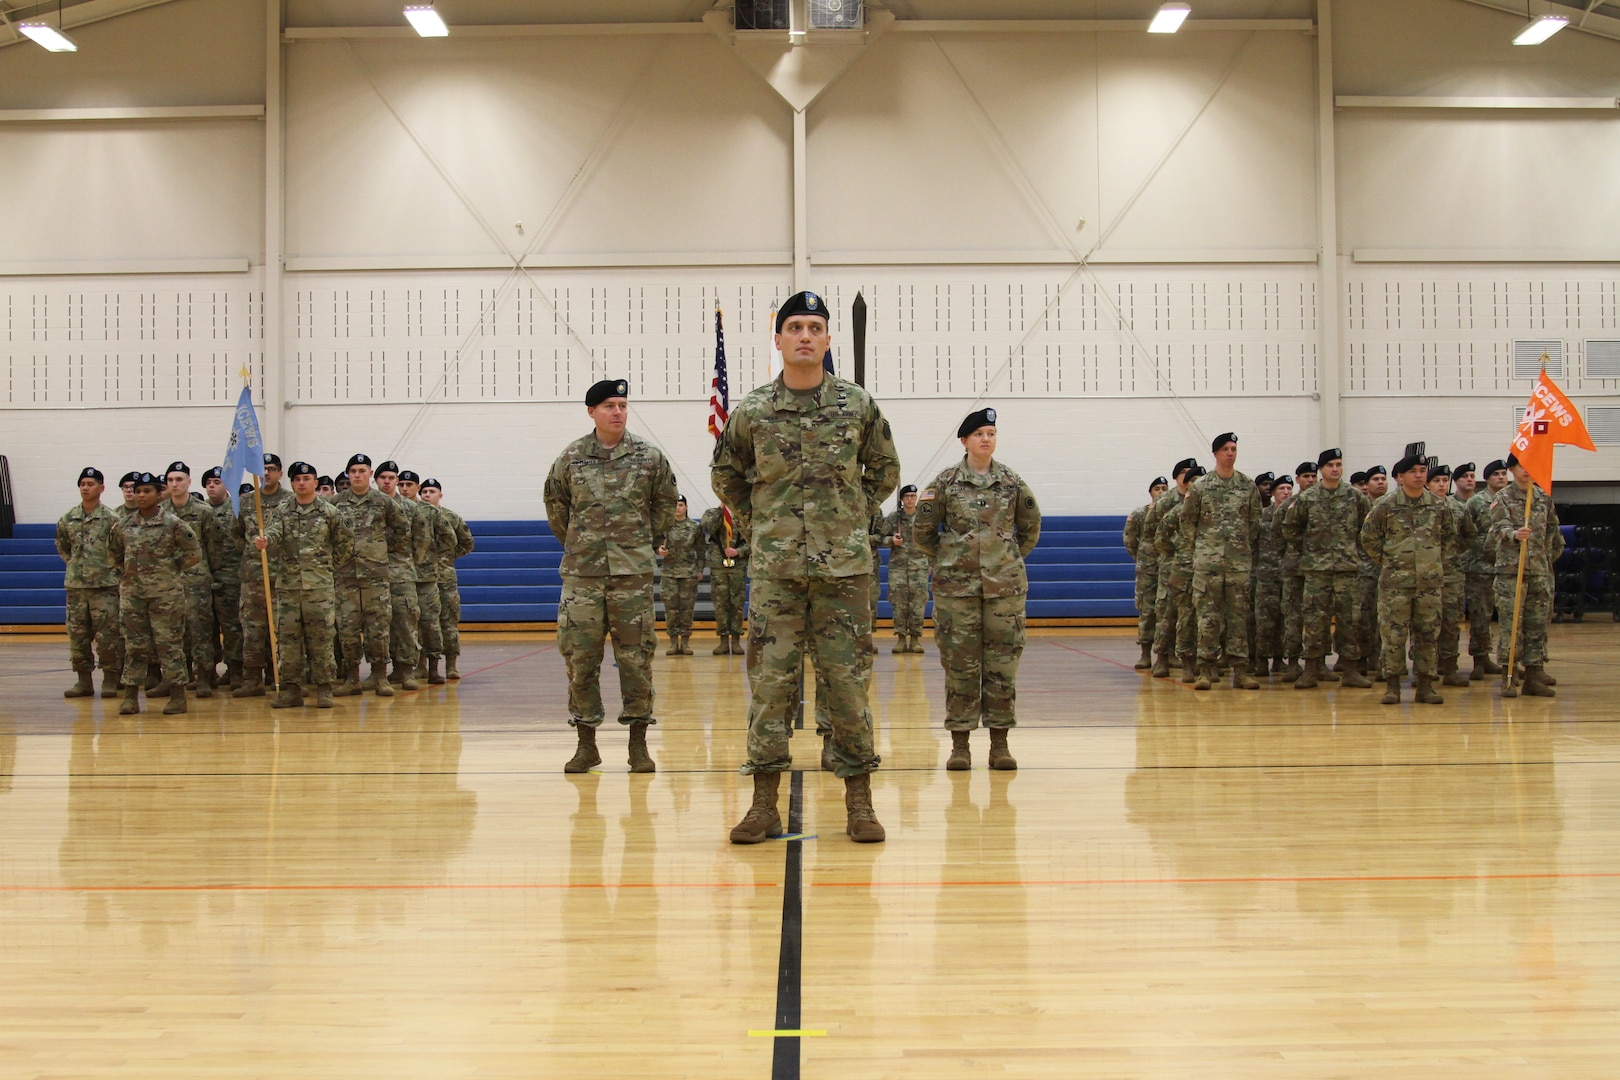 Soldiers of the newly activated Intelligence, Information, Cyber, Electronic Warfare and Space Detachment stand in formation during a ceremony Jan. 11, 2019, at Joint Base Lewis McChord, Washington. The ceremony marked the launch of the first-ever Intelligence, Information, Cyber, Electronic Warfare and Space Detachment in the U.S. Army. I2CEWS was designed to integrate cyber warfare, electronic warfare and space capabilities.   (U.S. Army photo by Pvt. Caleb Minor)